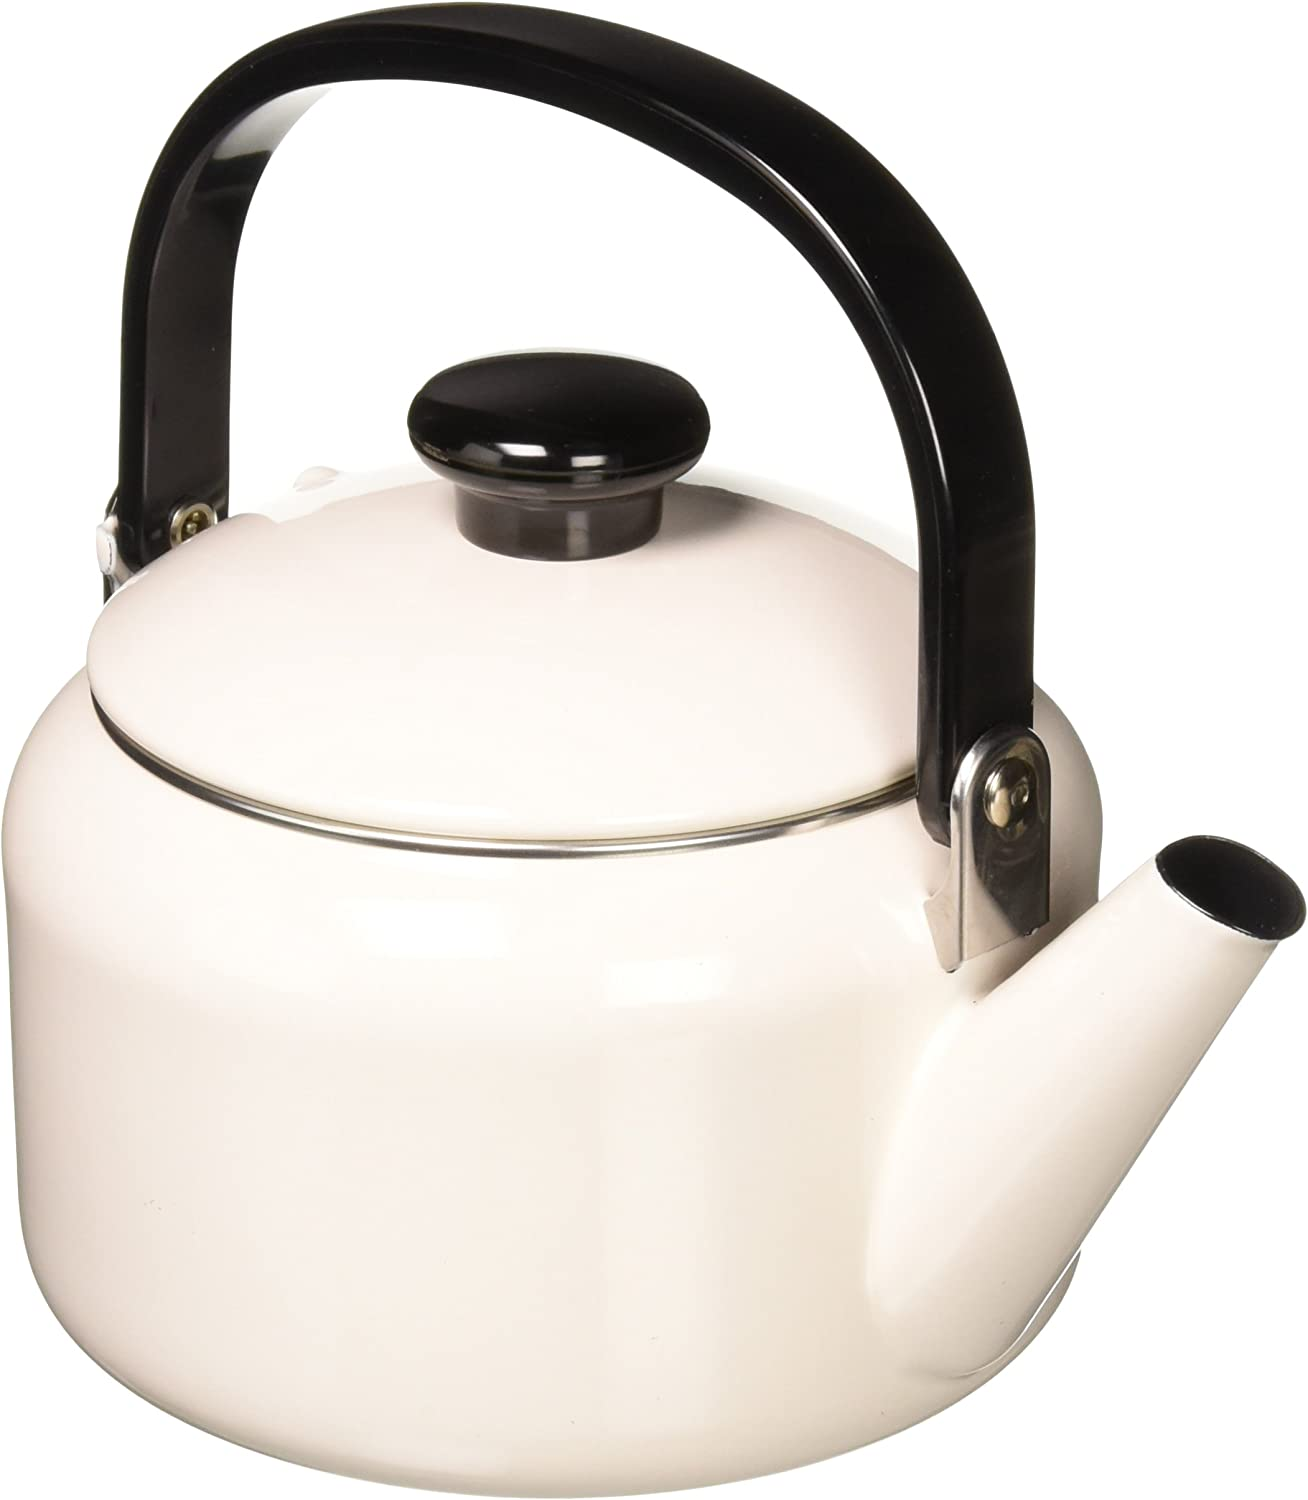 Farberware Victoria Kettle, 2 Quart